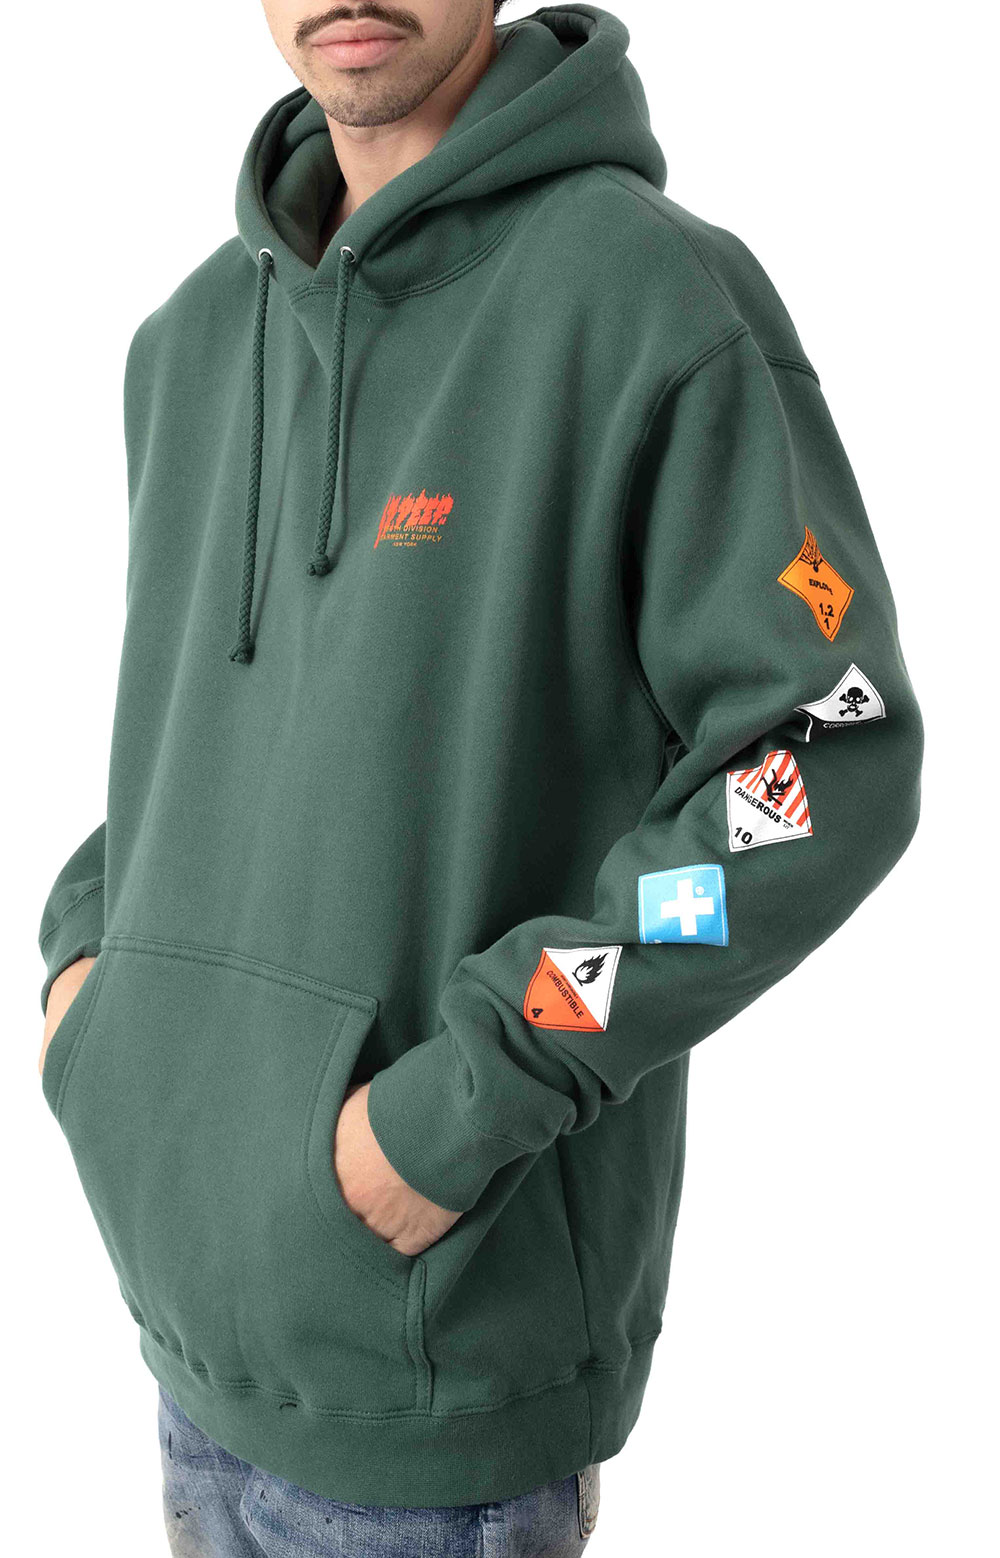 Prohibited Pullover Hoodie - Green  2